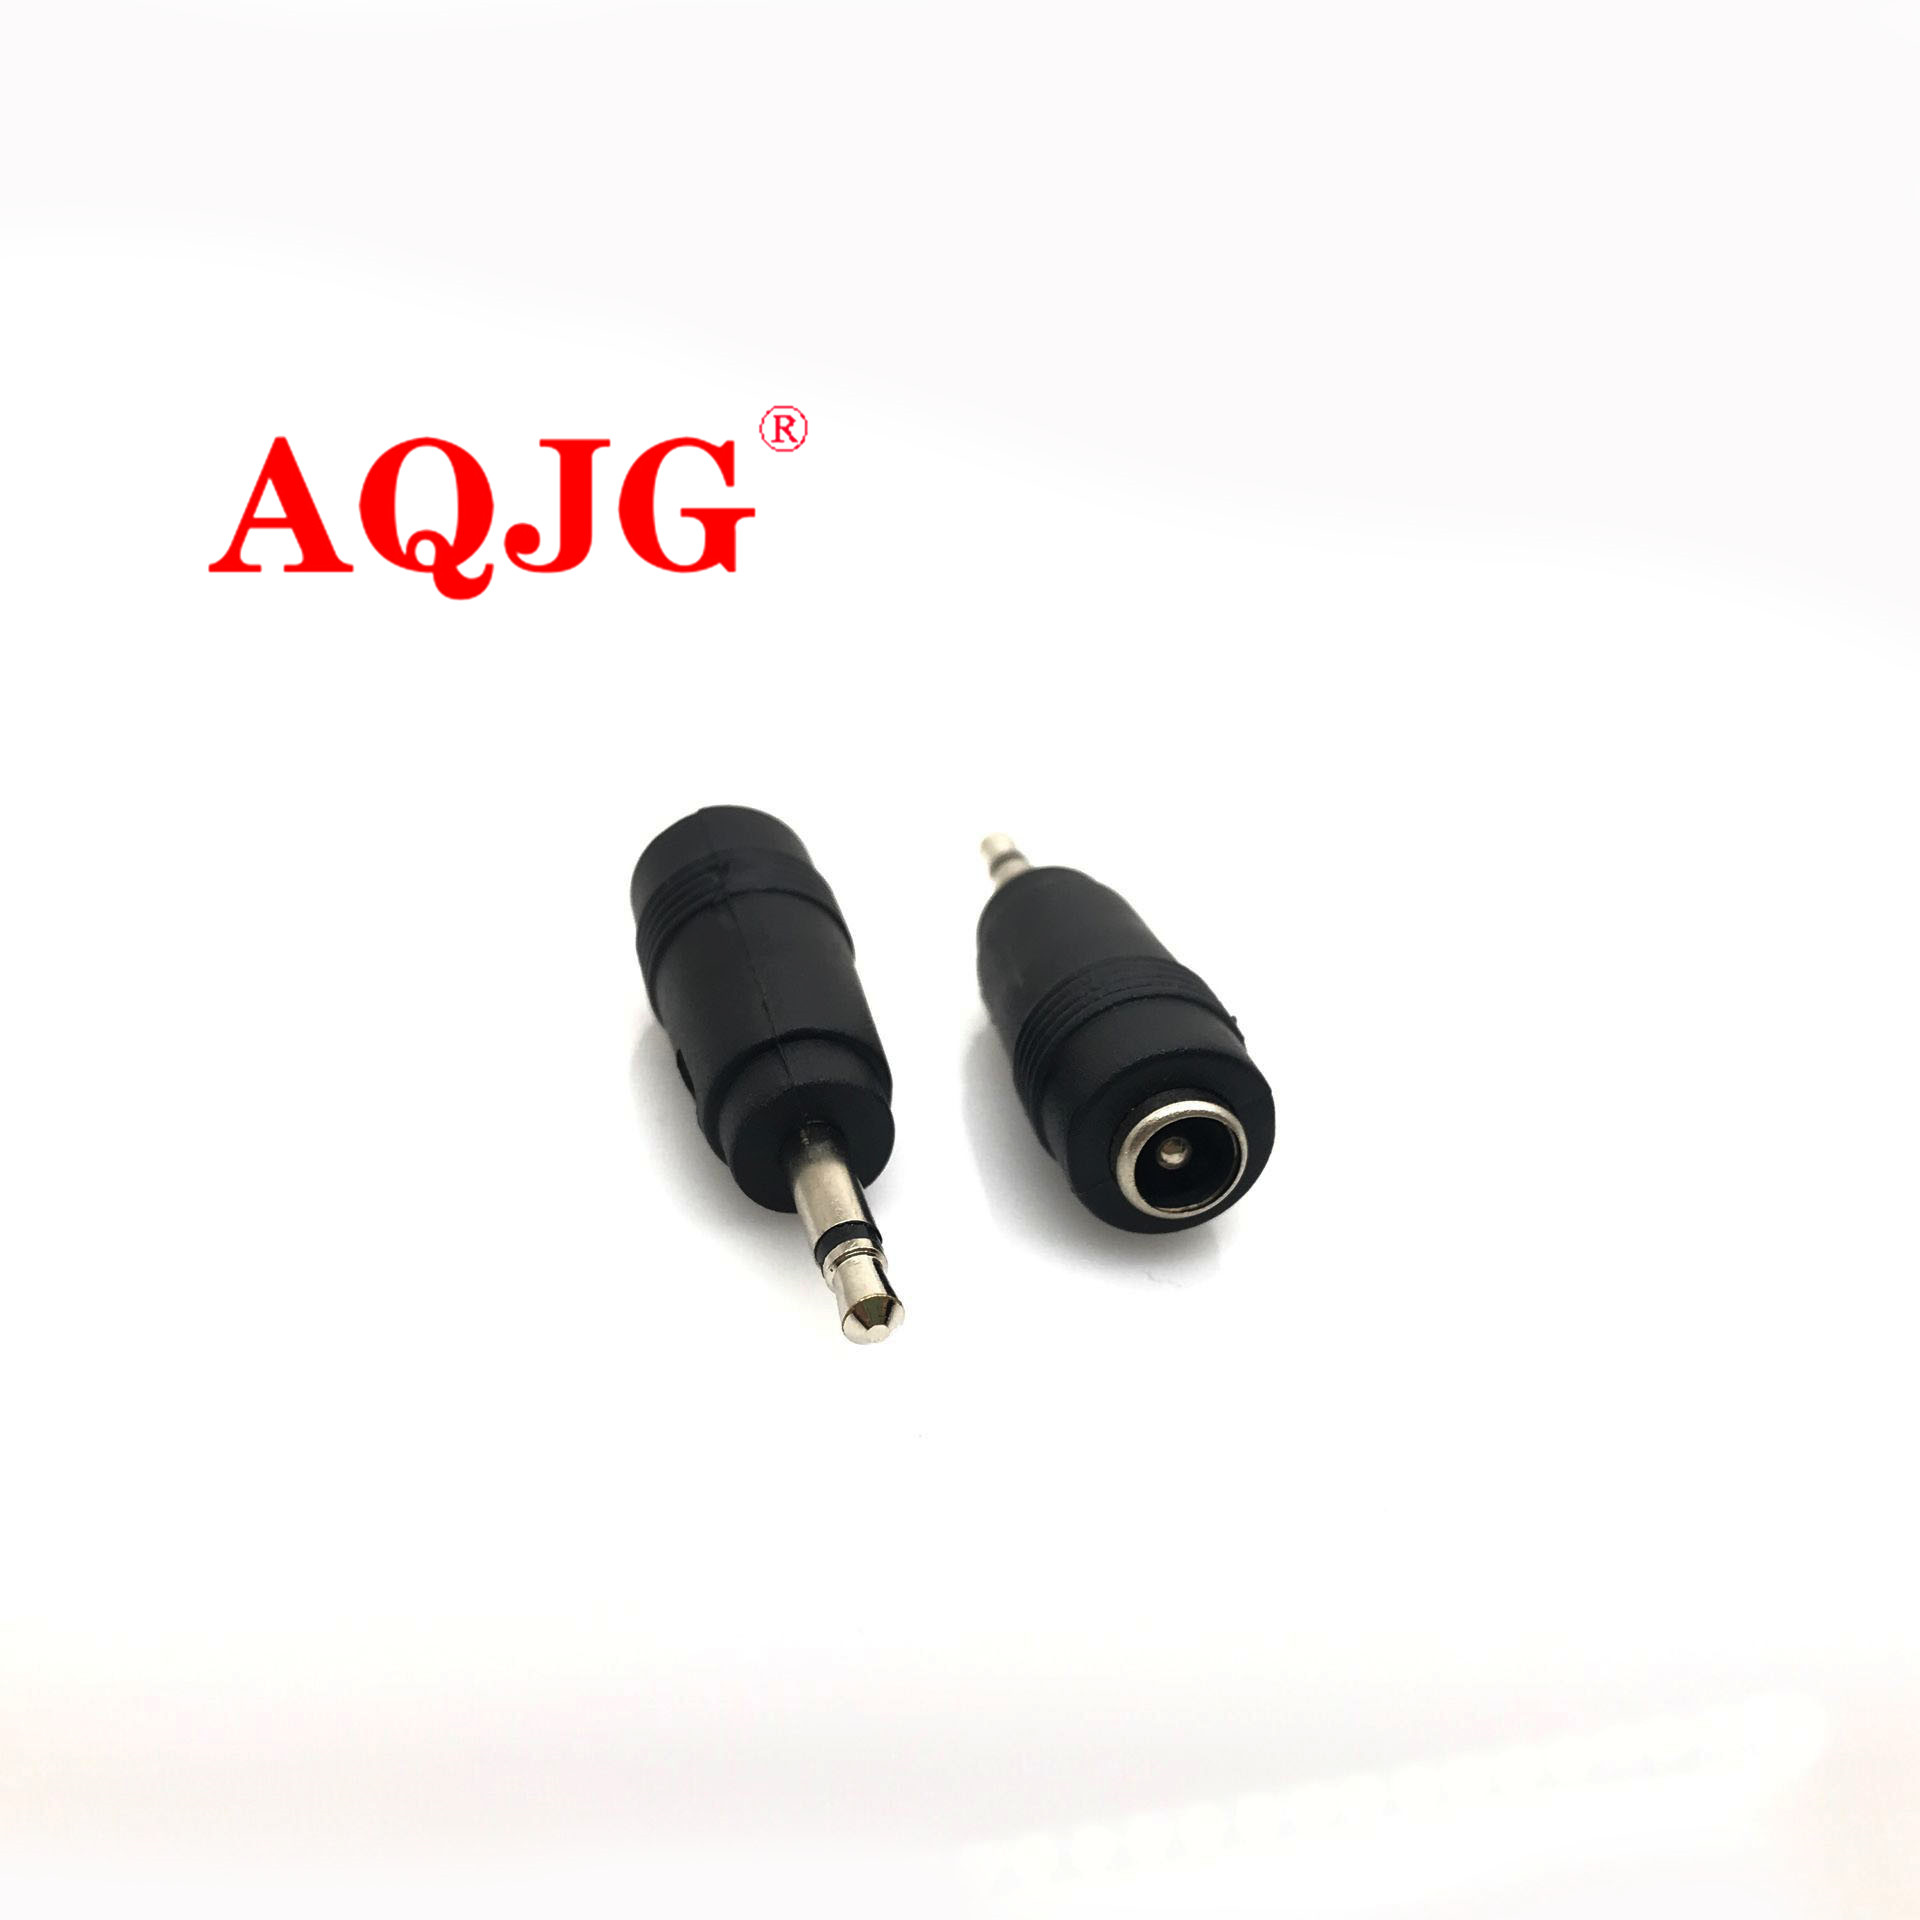 2pcs 3.5mm 2 Pole Mono Plug To 5.5x2.1mm Female Jack Connector 3.5 To 5.5*2.1 Mm Plug DC Power Connector Adapter Laptop